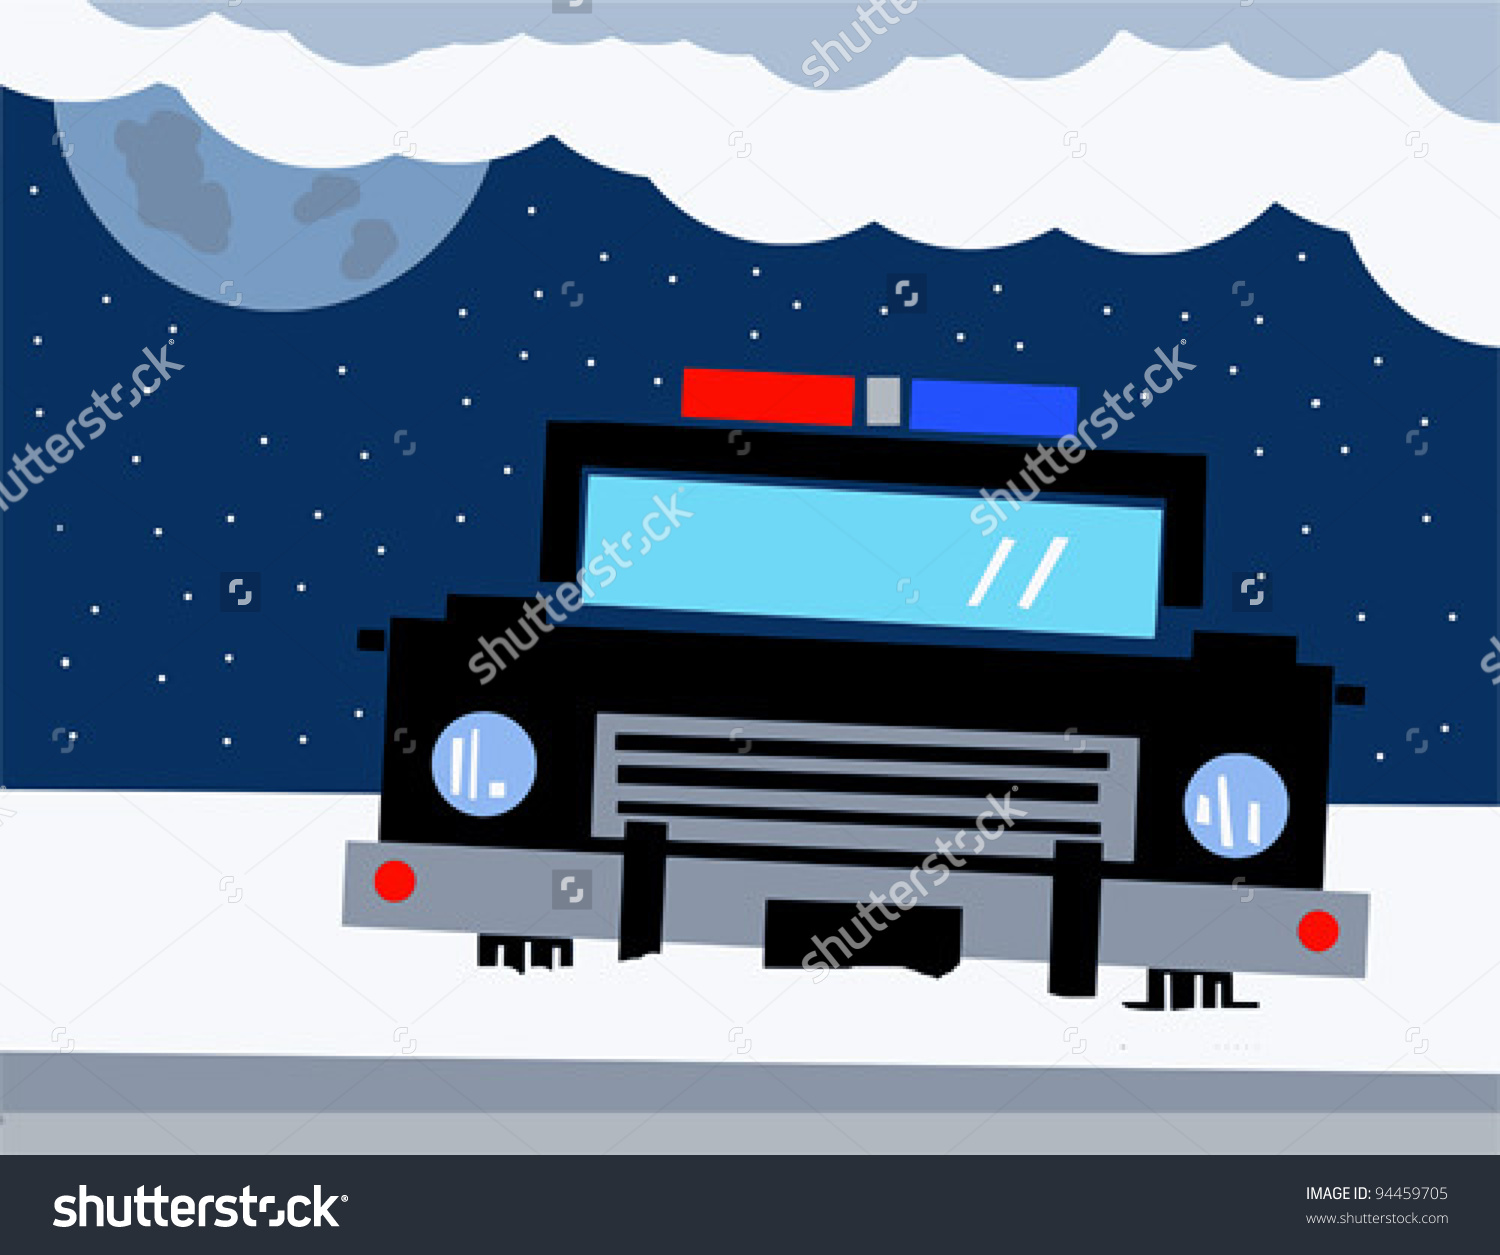 Police car snow clipart banner black and white Police car in snow clipart - ClipartFest banner black and white